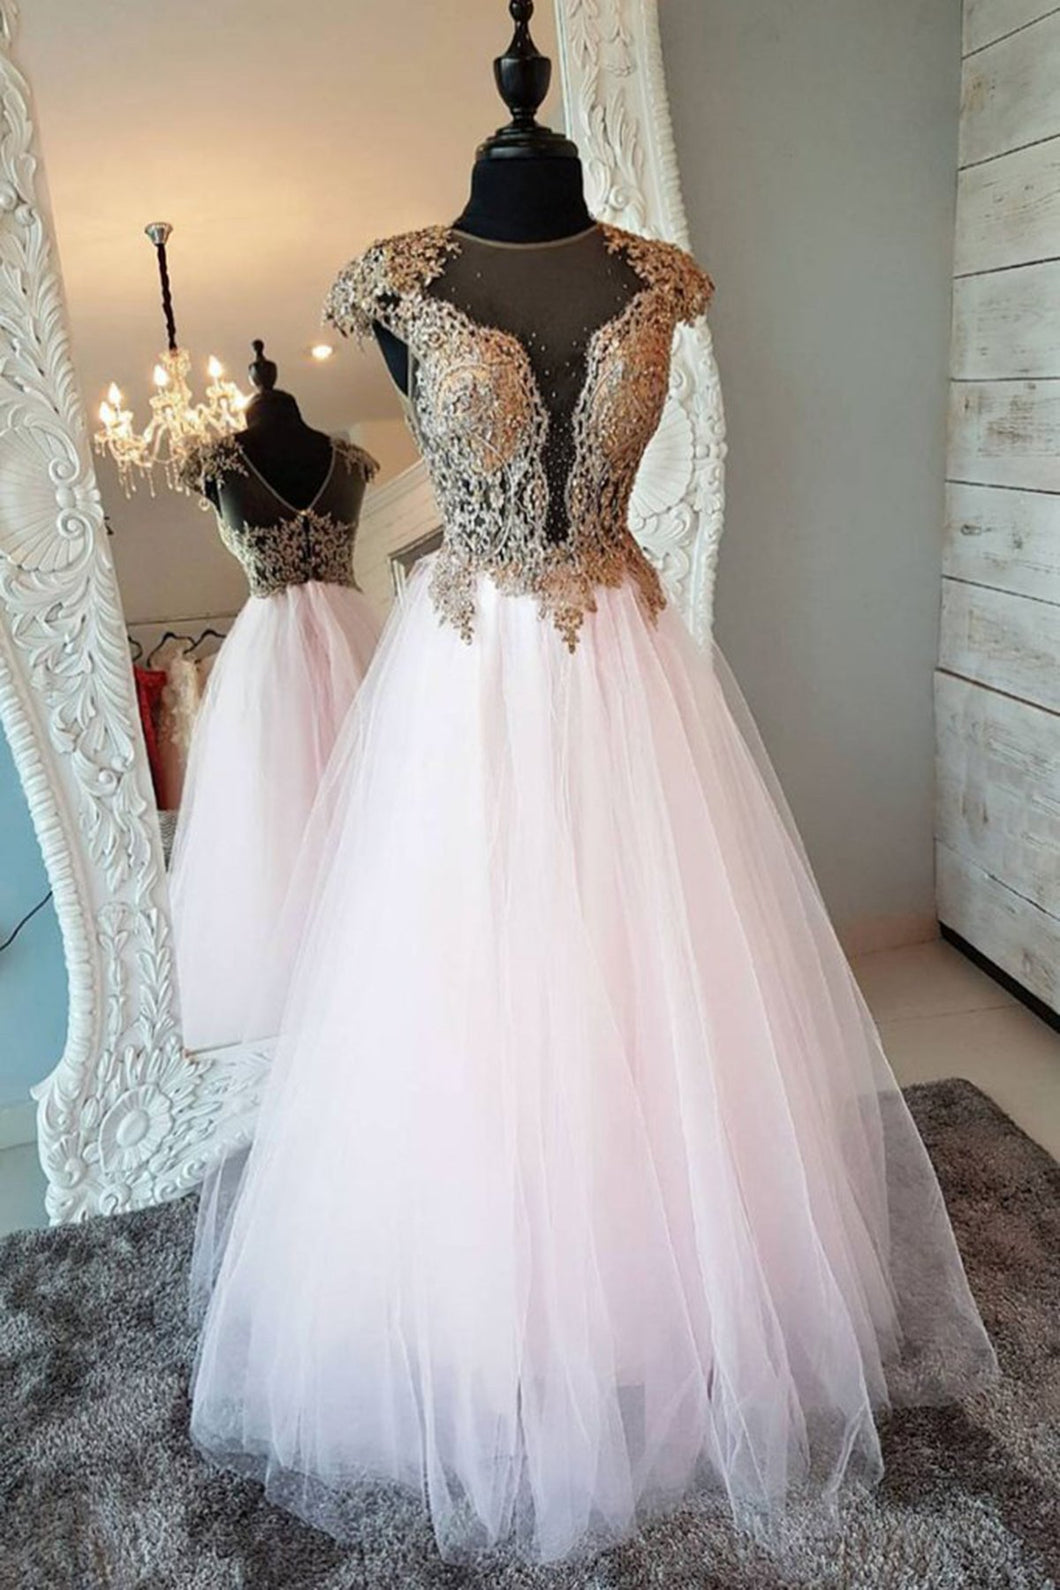 2019 Prom Dresses | 2019 White tulle O neck long senior prom dress, gold lace evening dress with cap sleeve